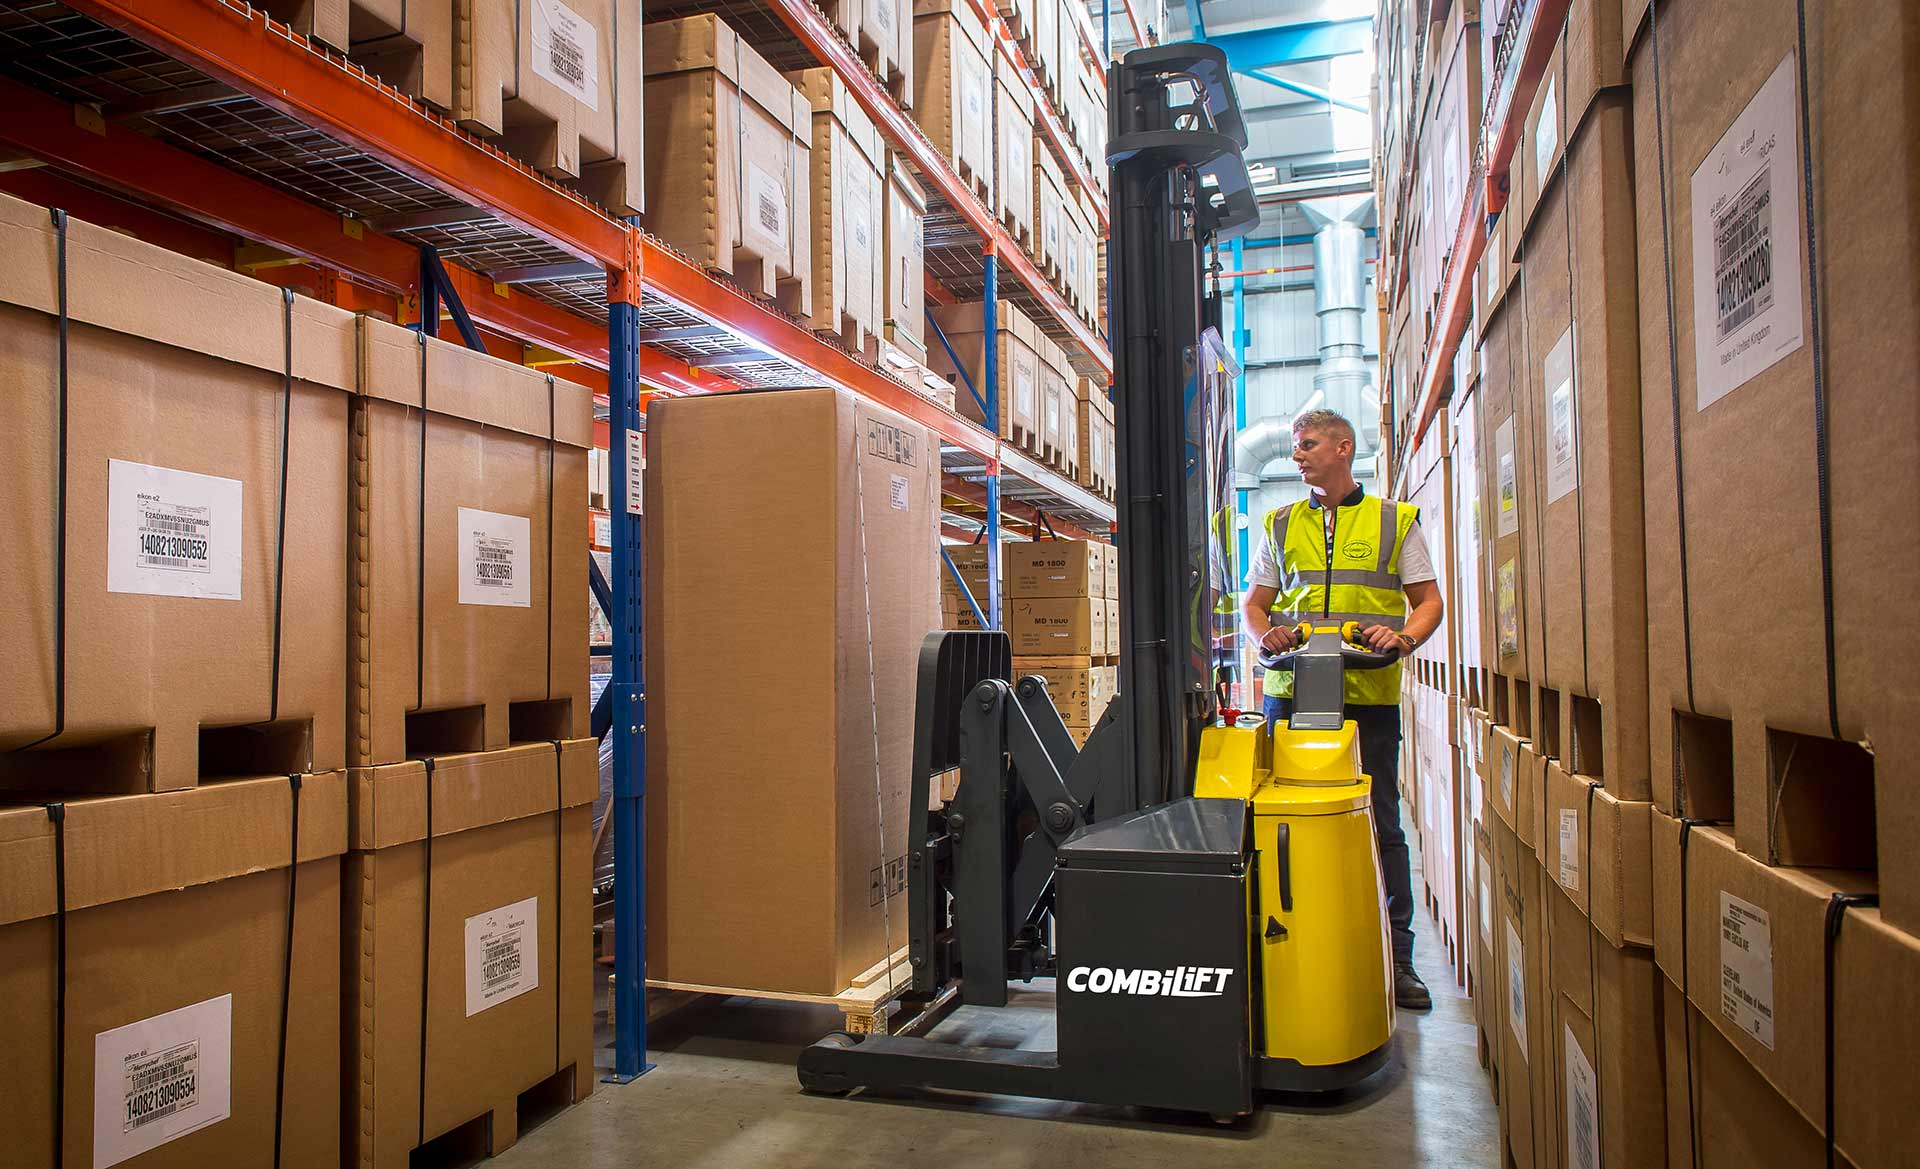 walk behind lifts for warehouses